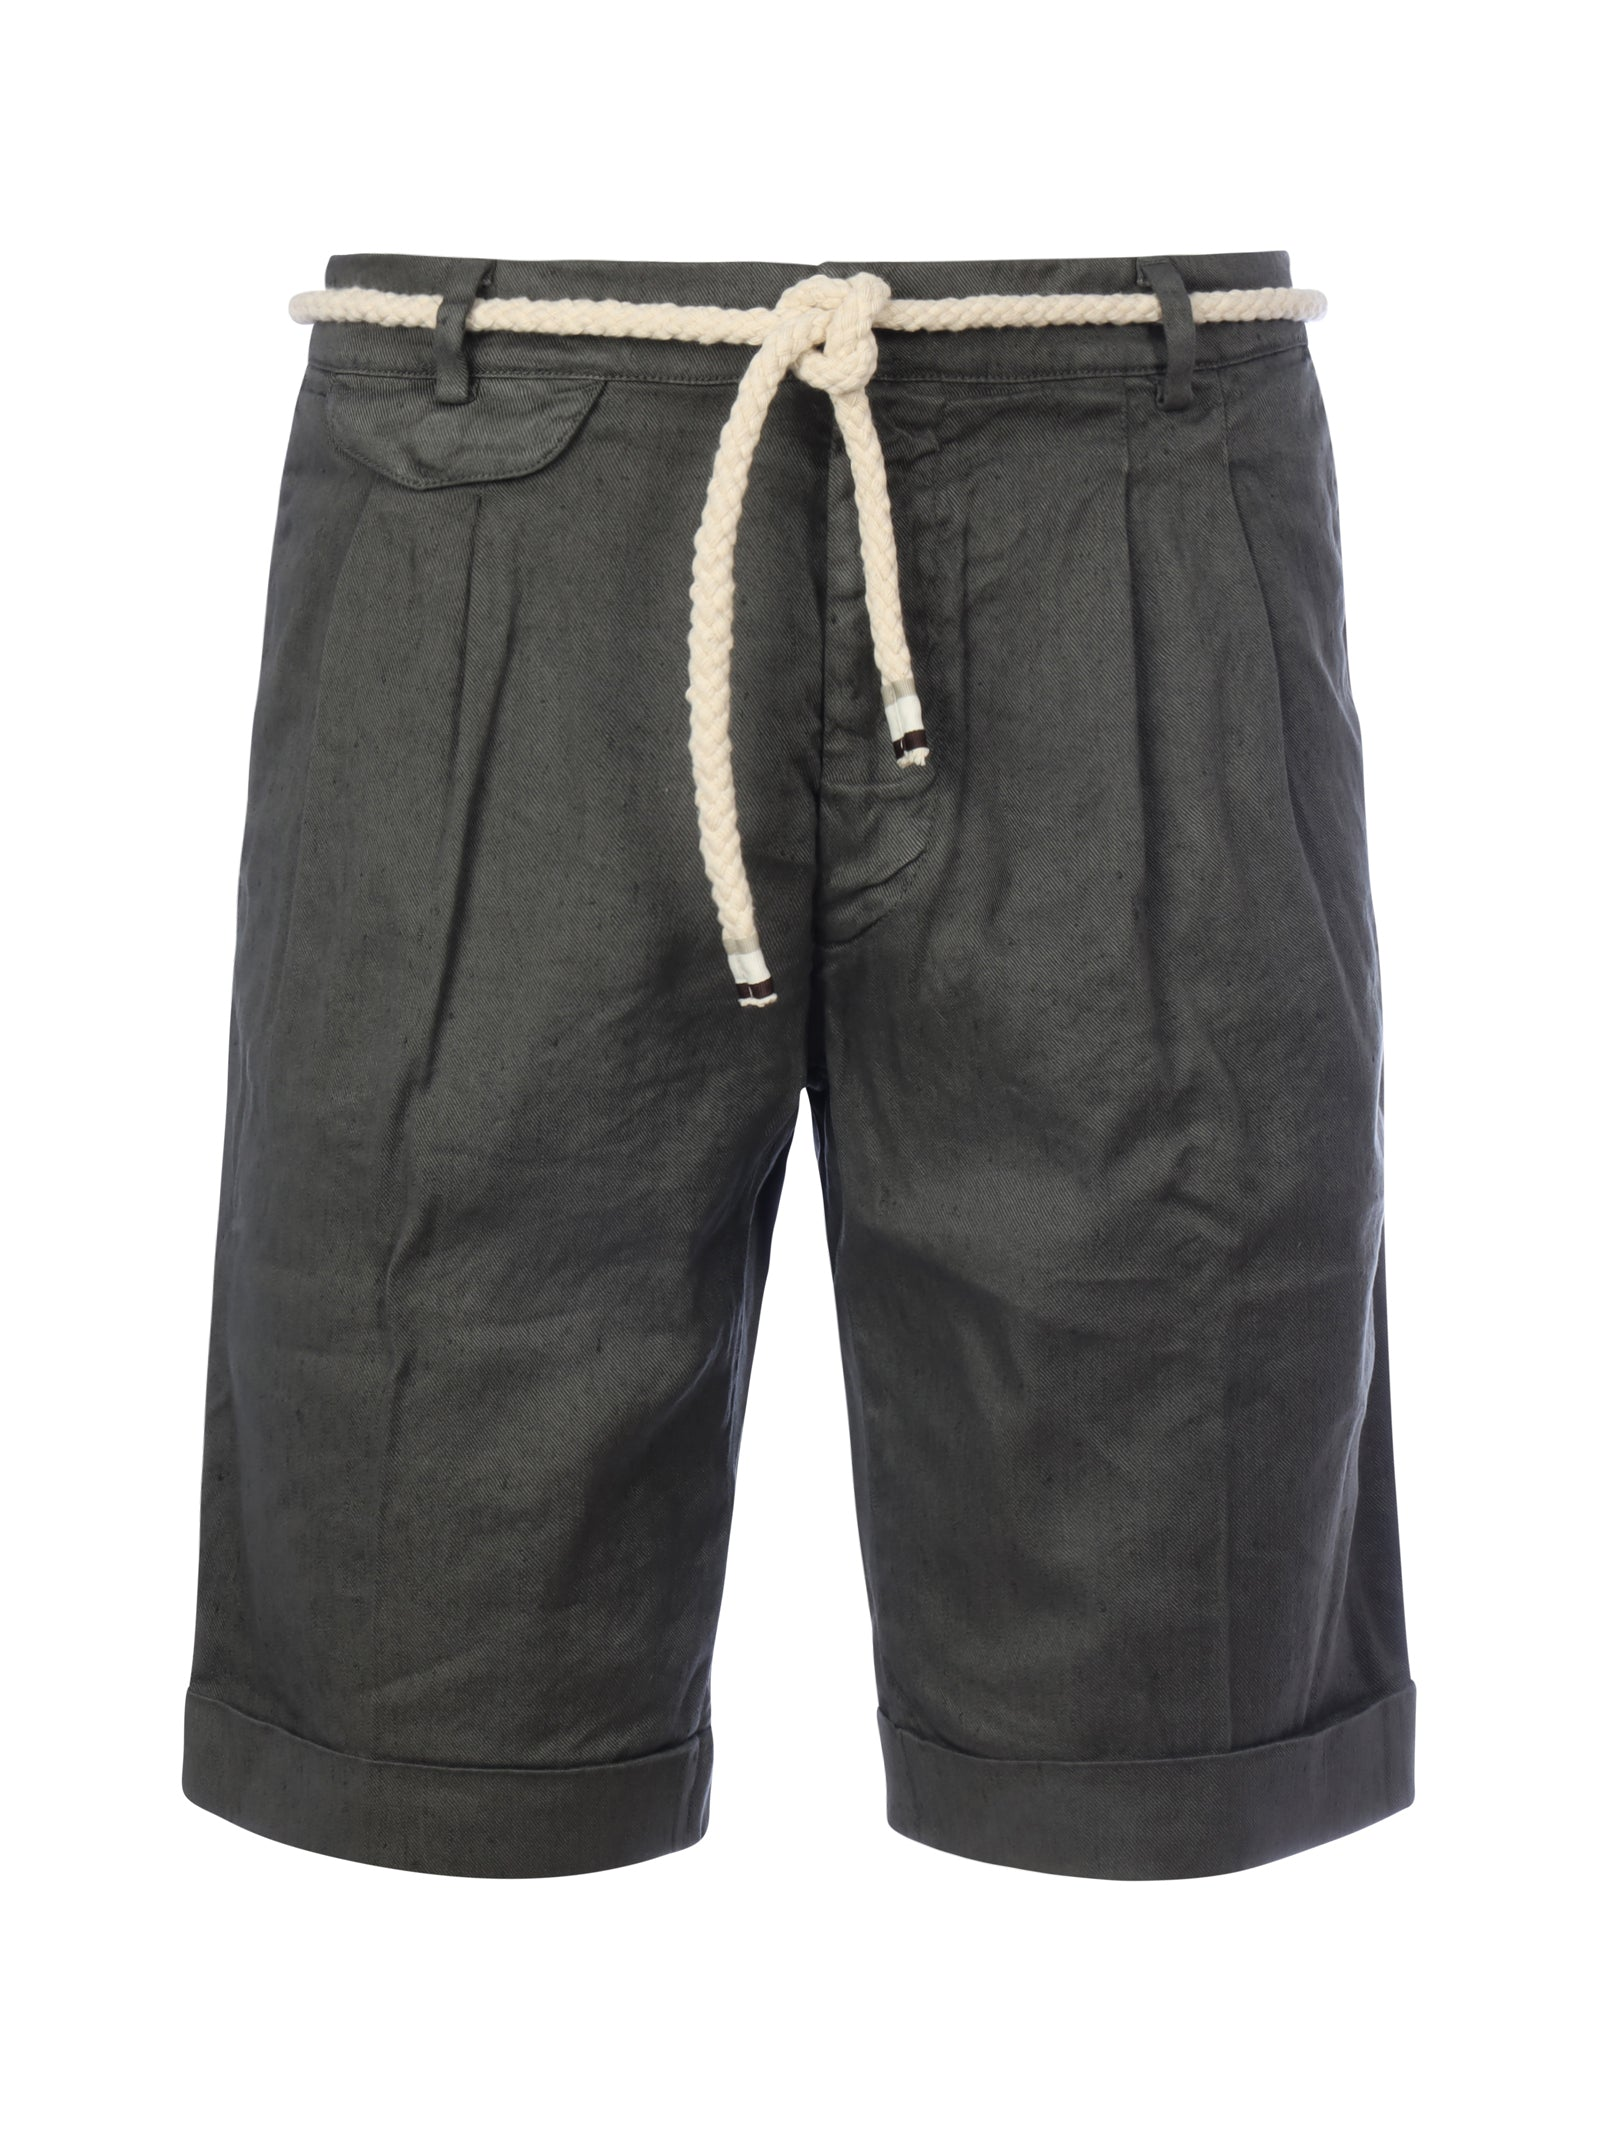 Shorts con cordoncino in vita